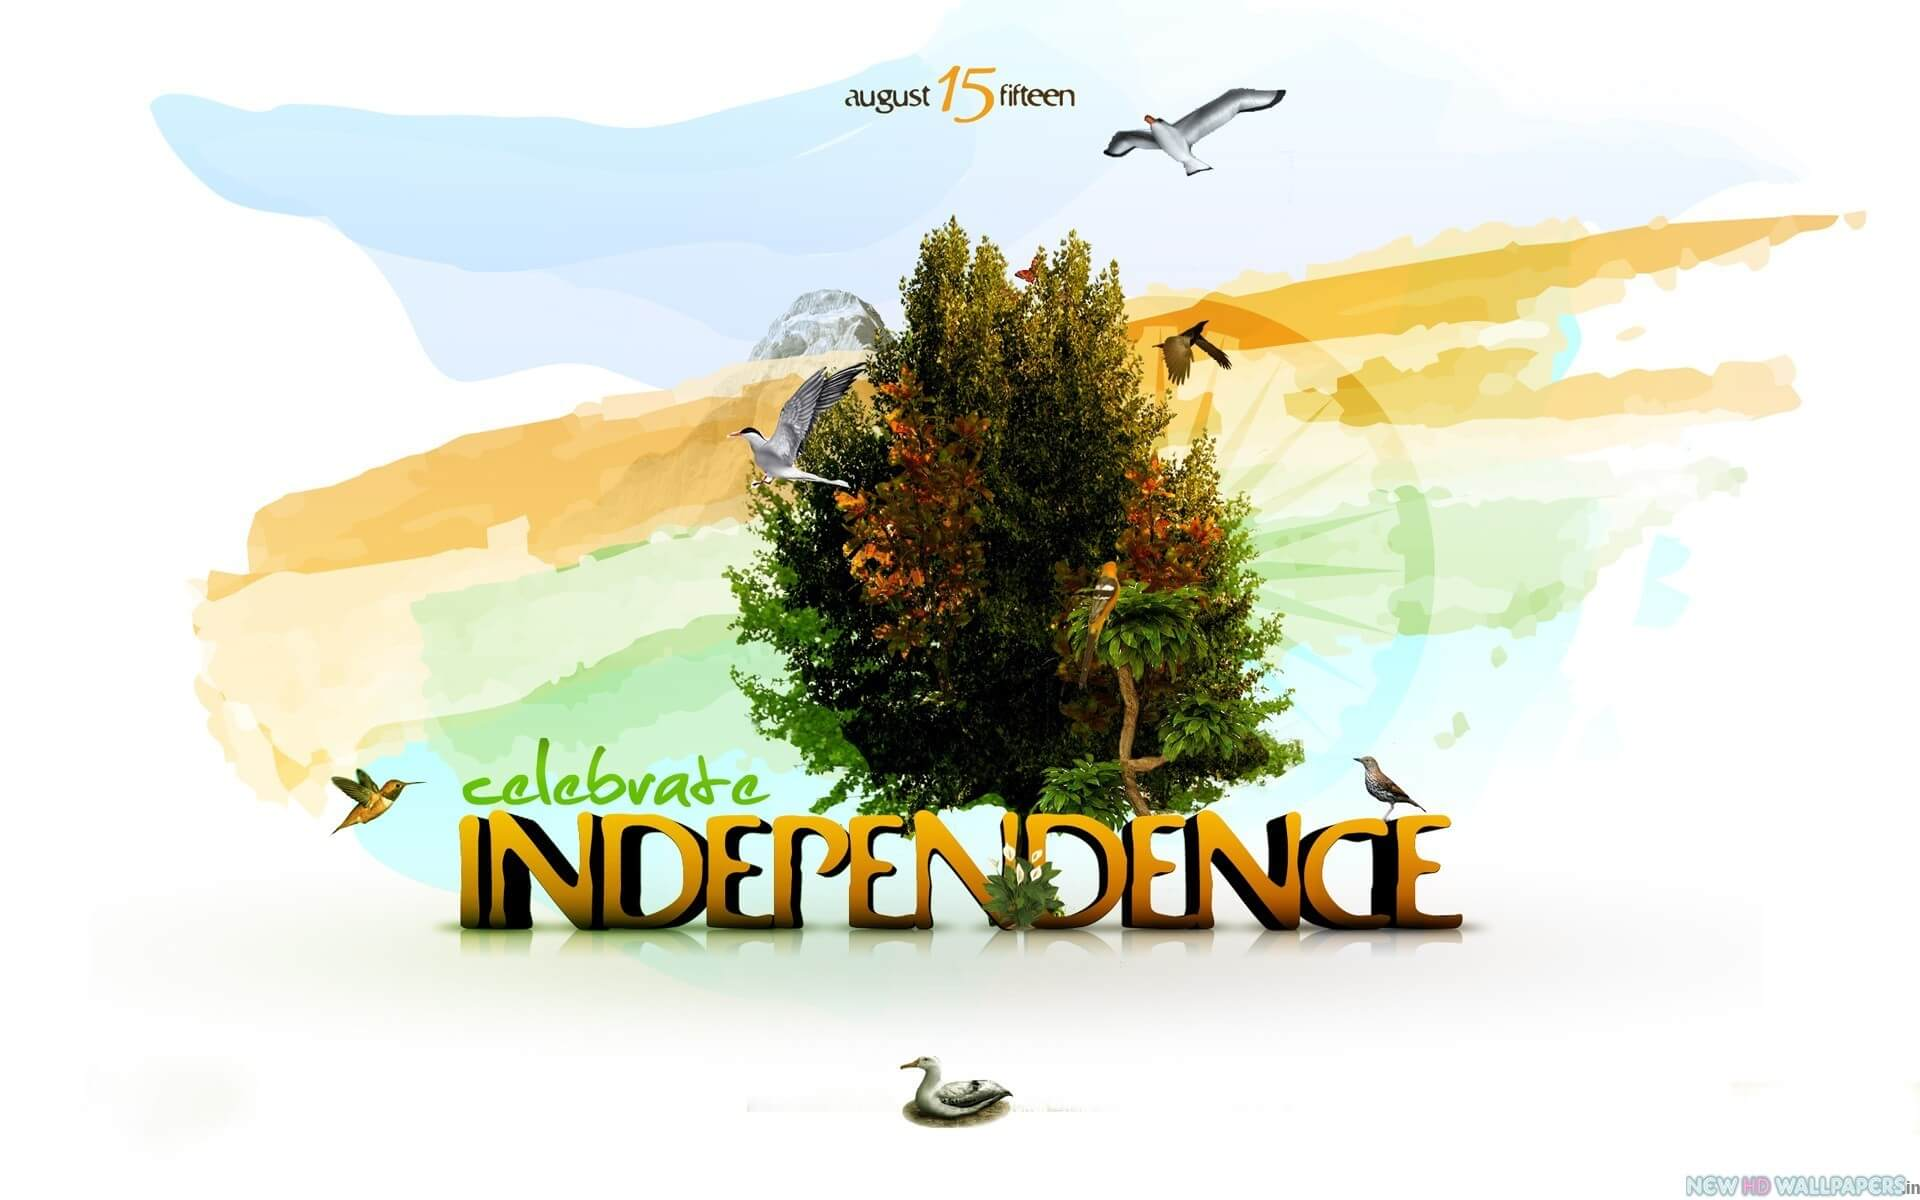 celebrate india independence day august 15th modern wallpaper